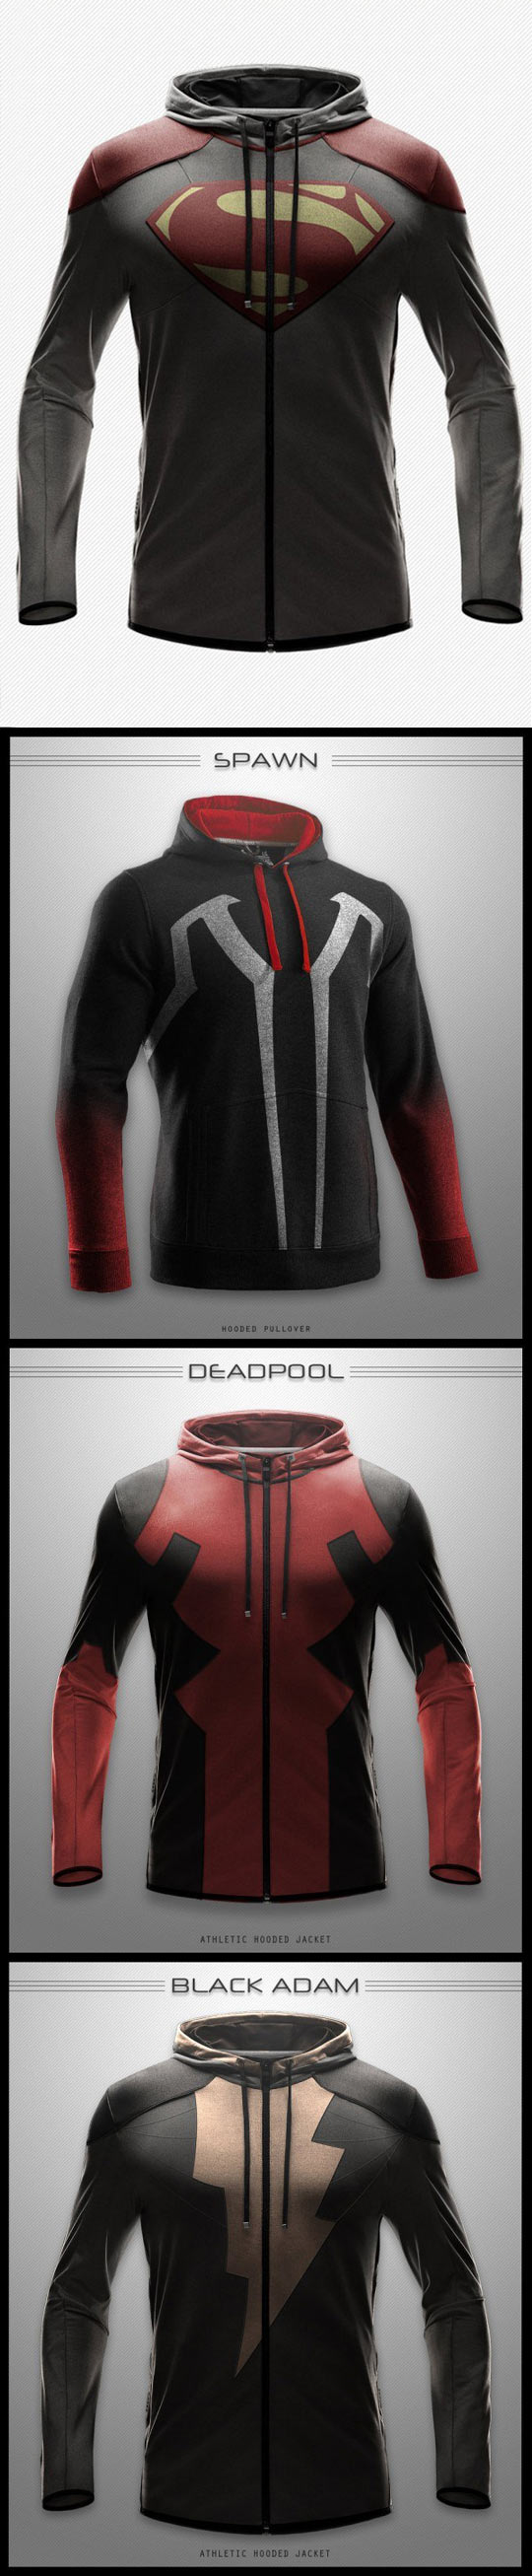 The coolest hoodies you won